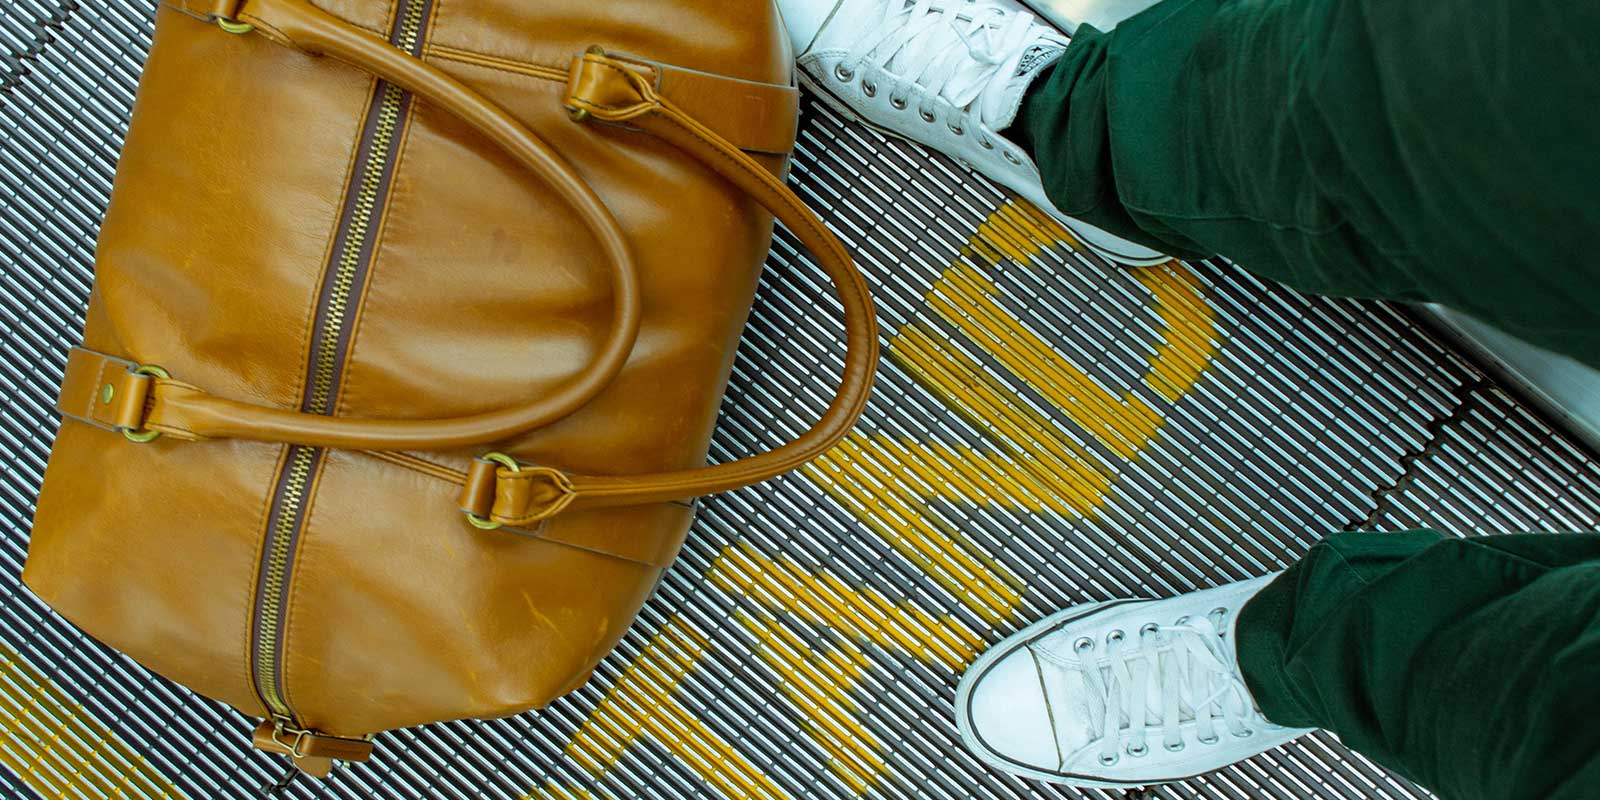 Can A Weekender Bag Be A Carry-on?